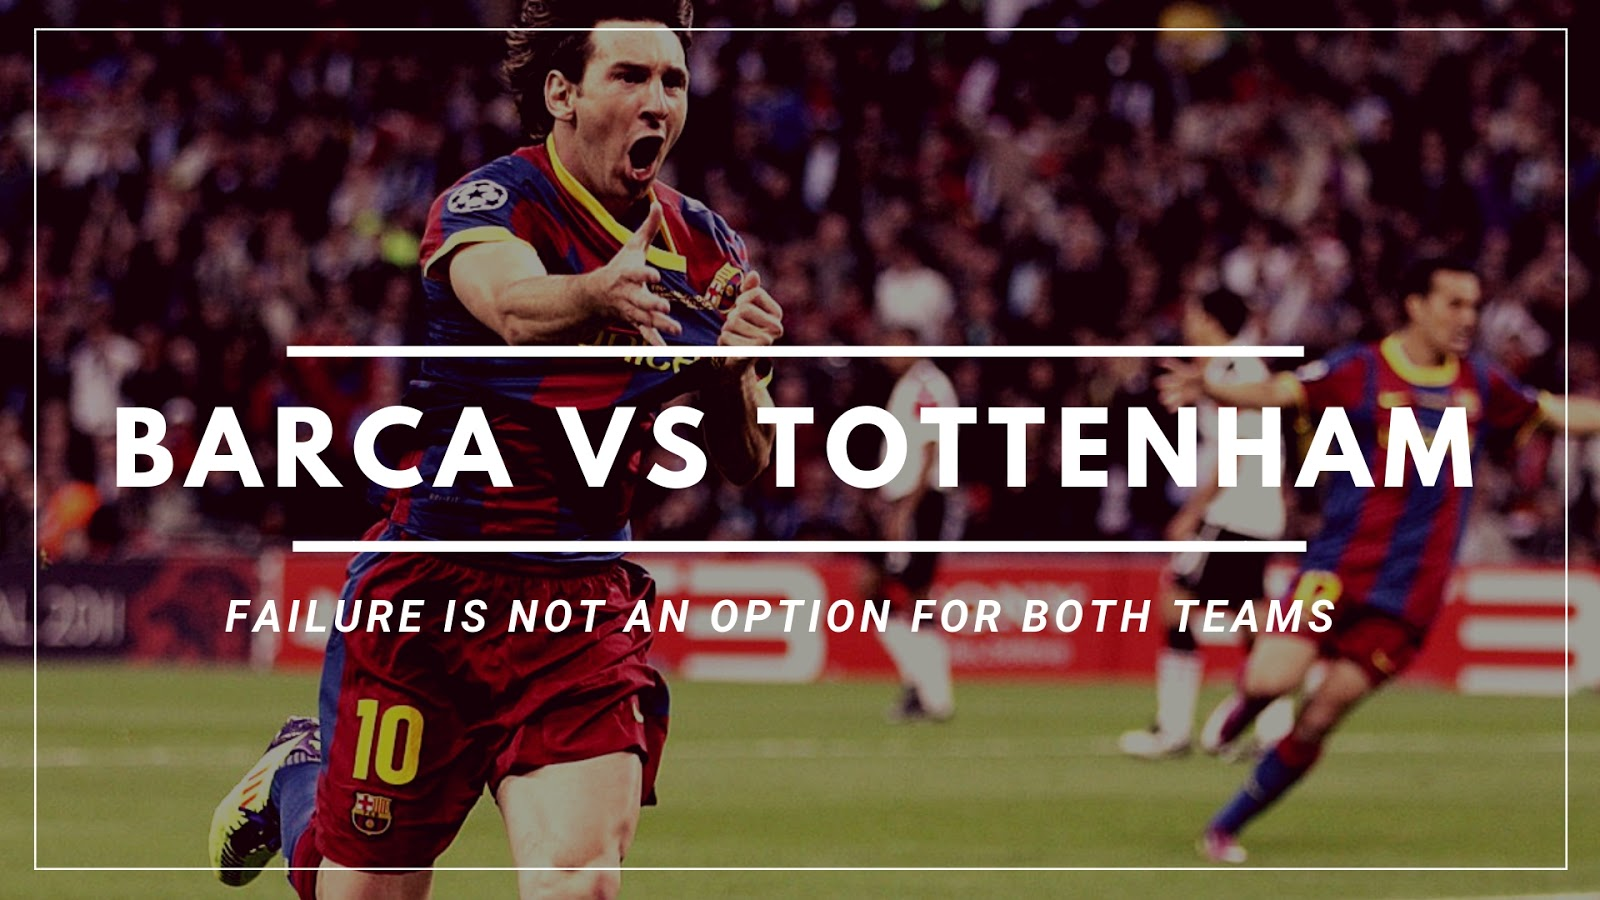 Barca vs Tottenham Match Preview